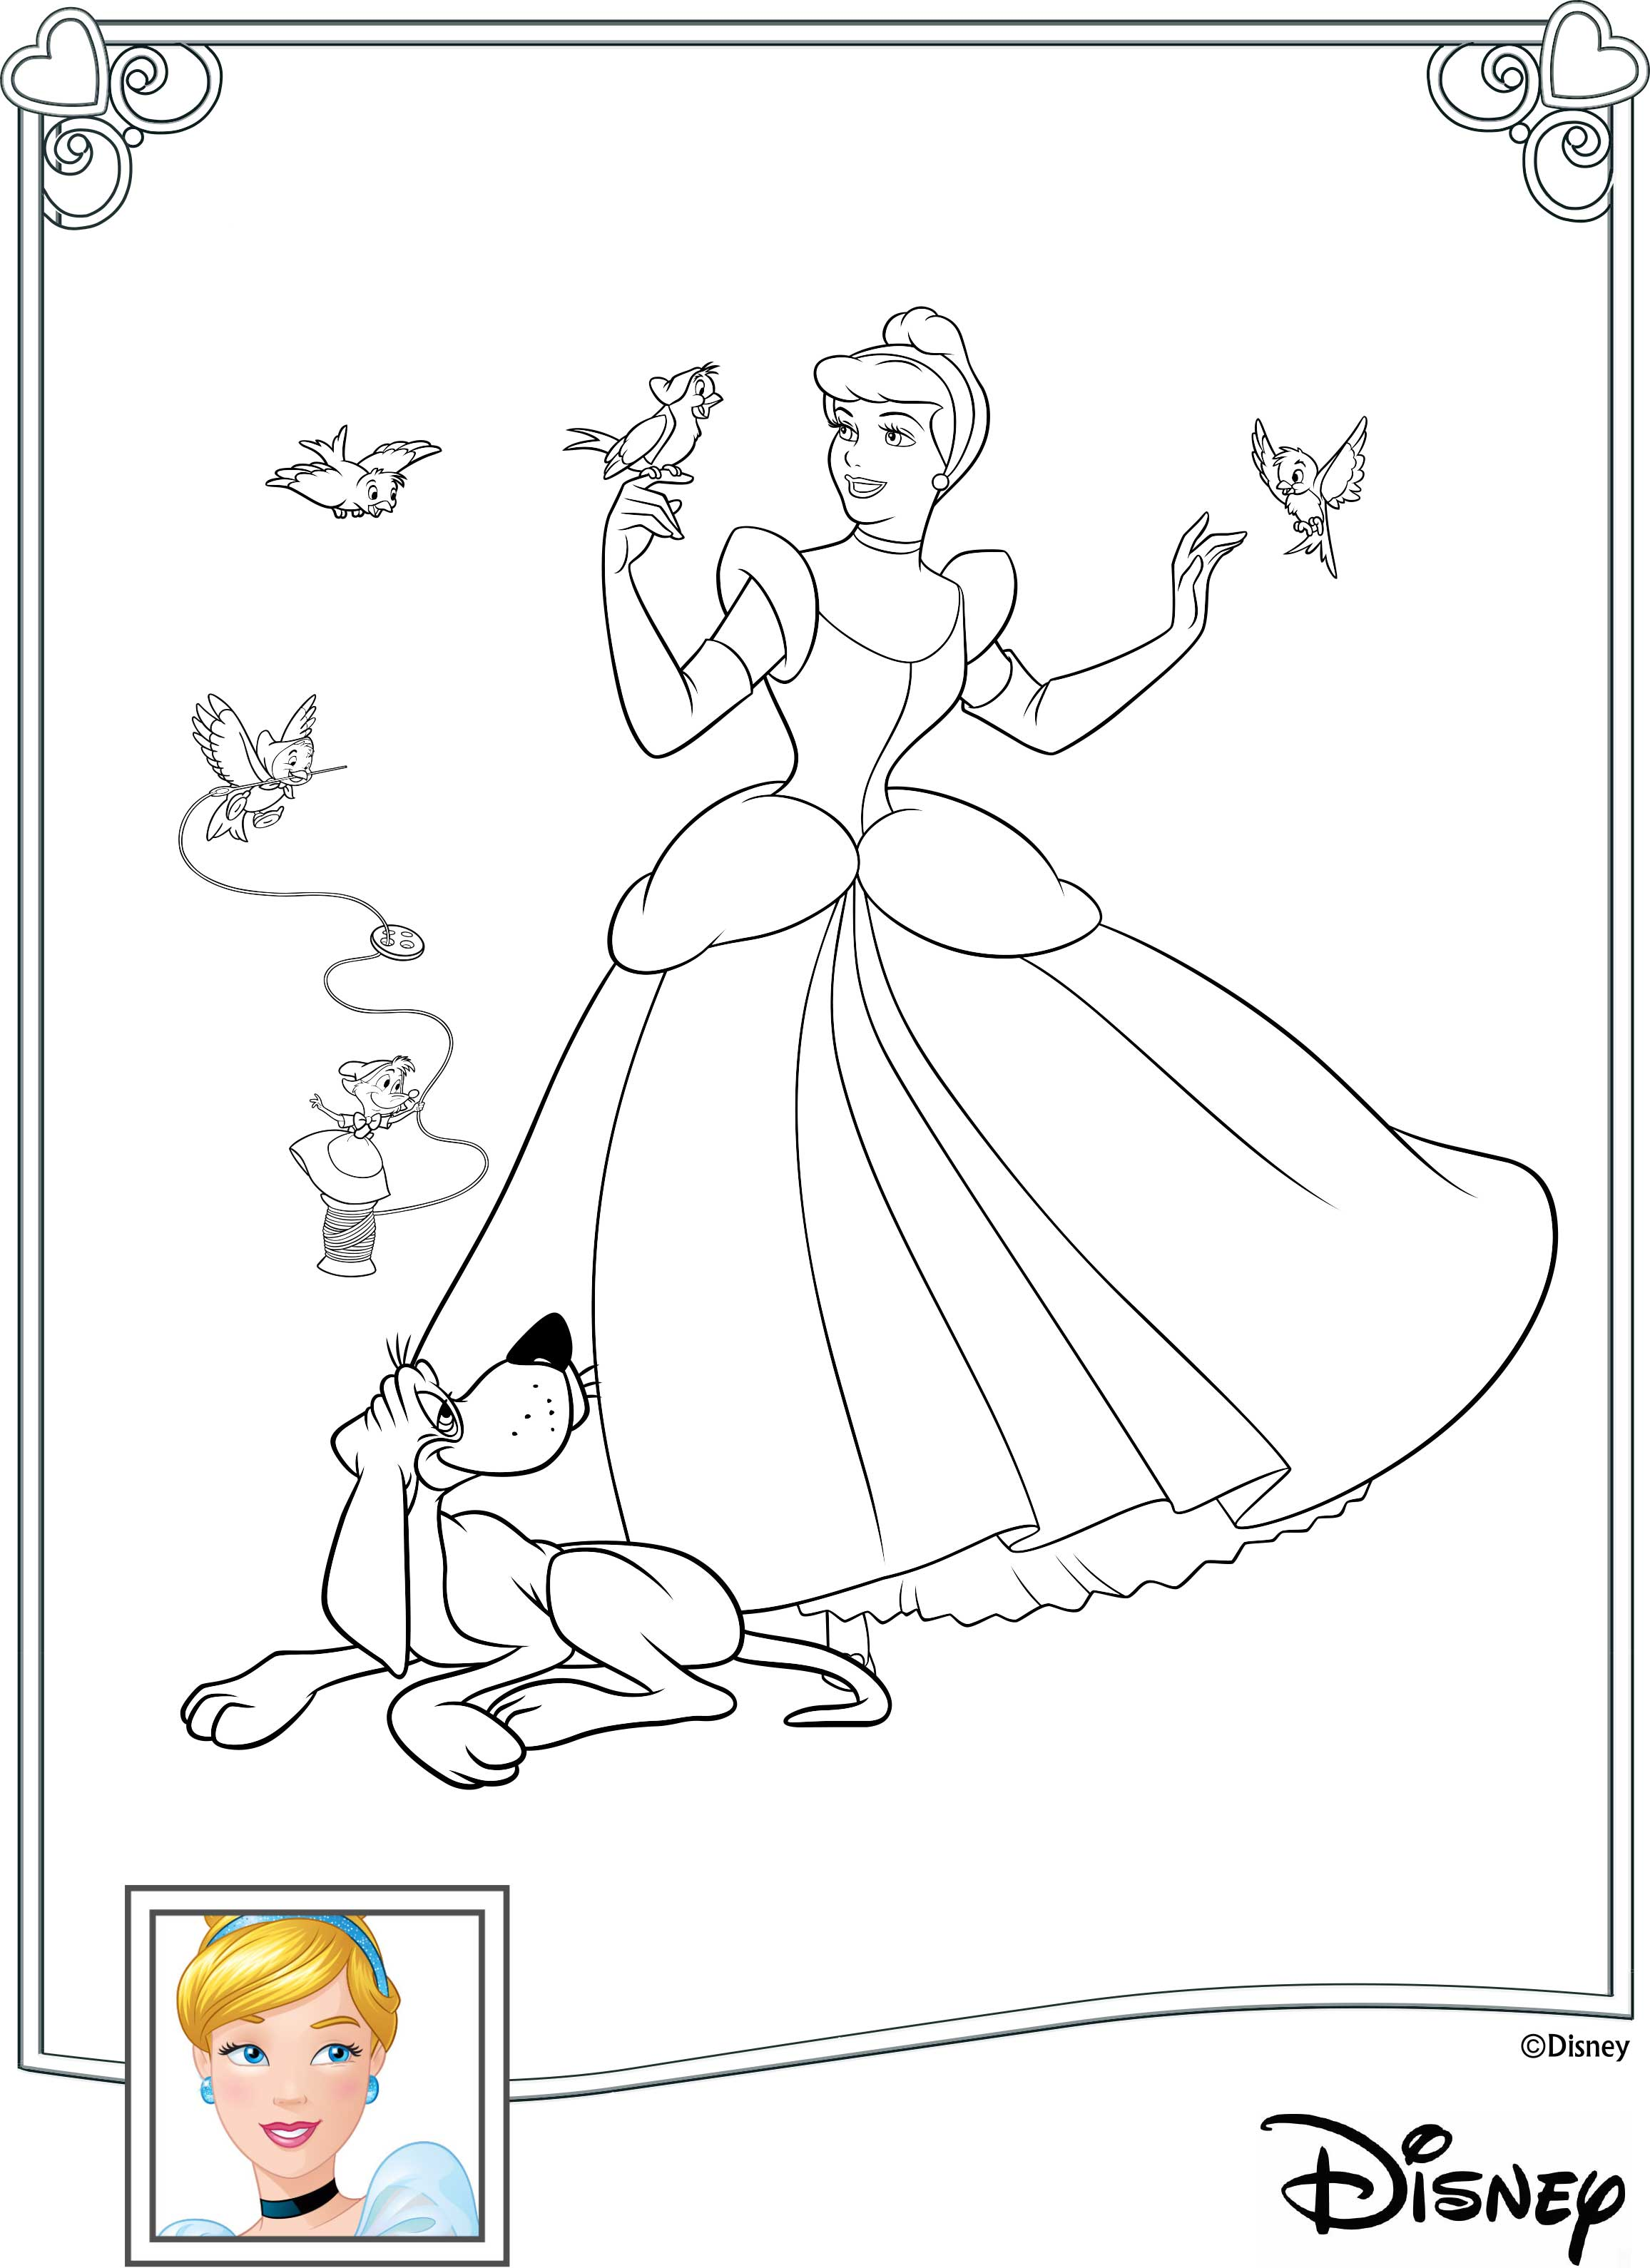 Download Fun Activities And Color Ins To Print Out And Play With Disney Princess